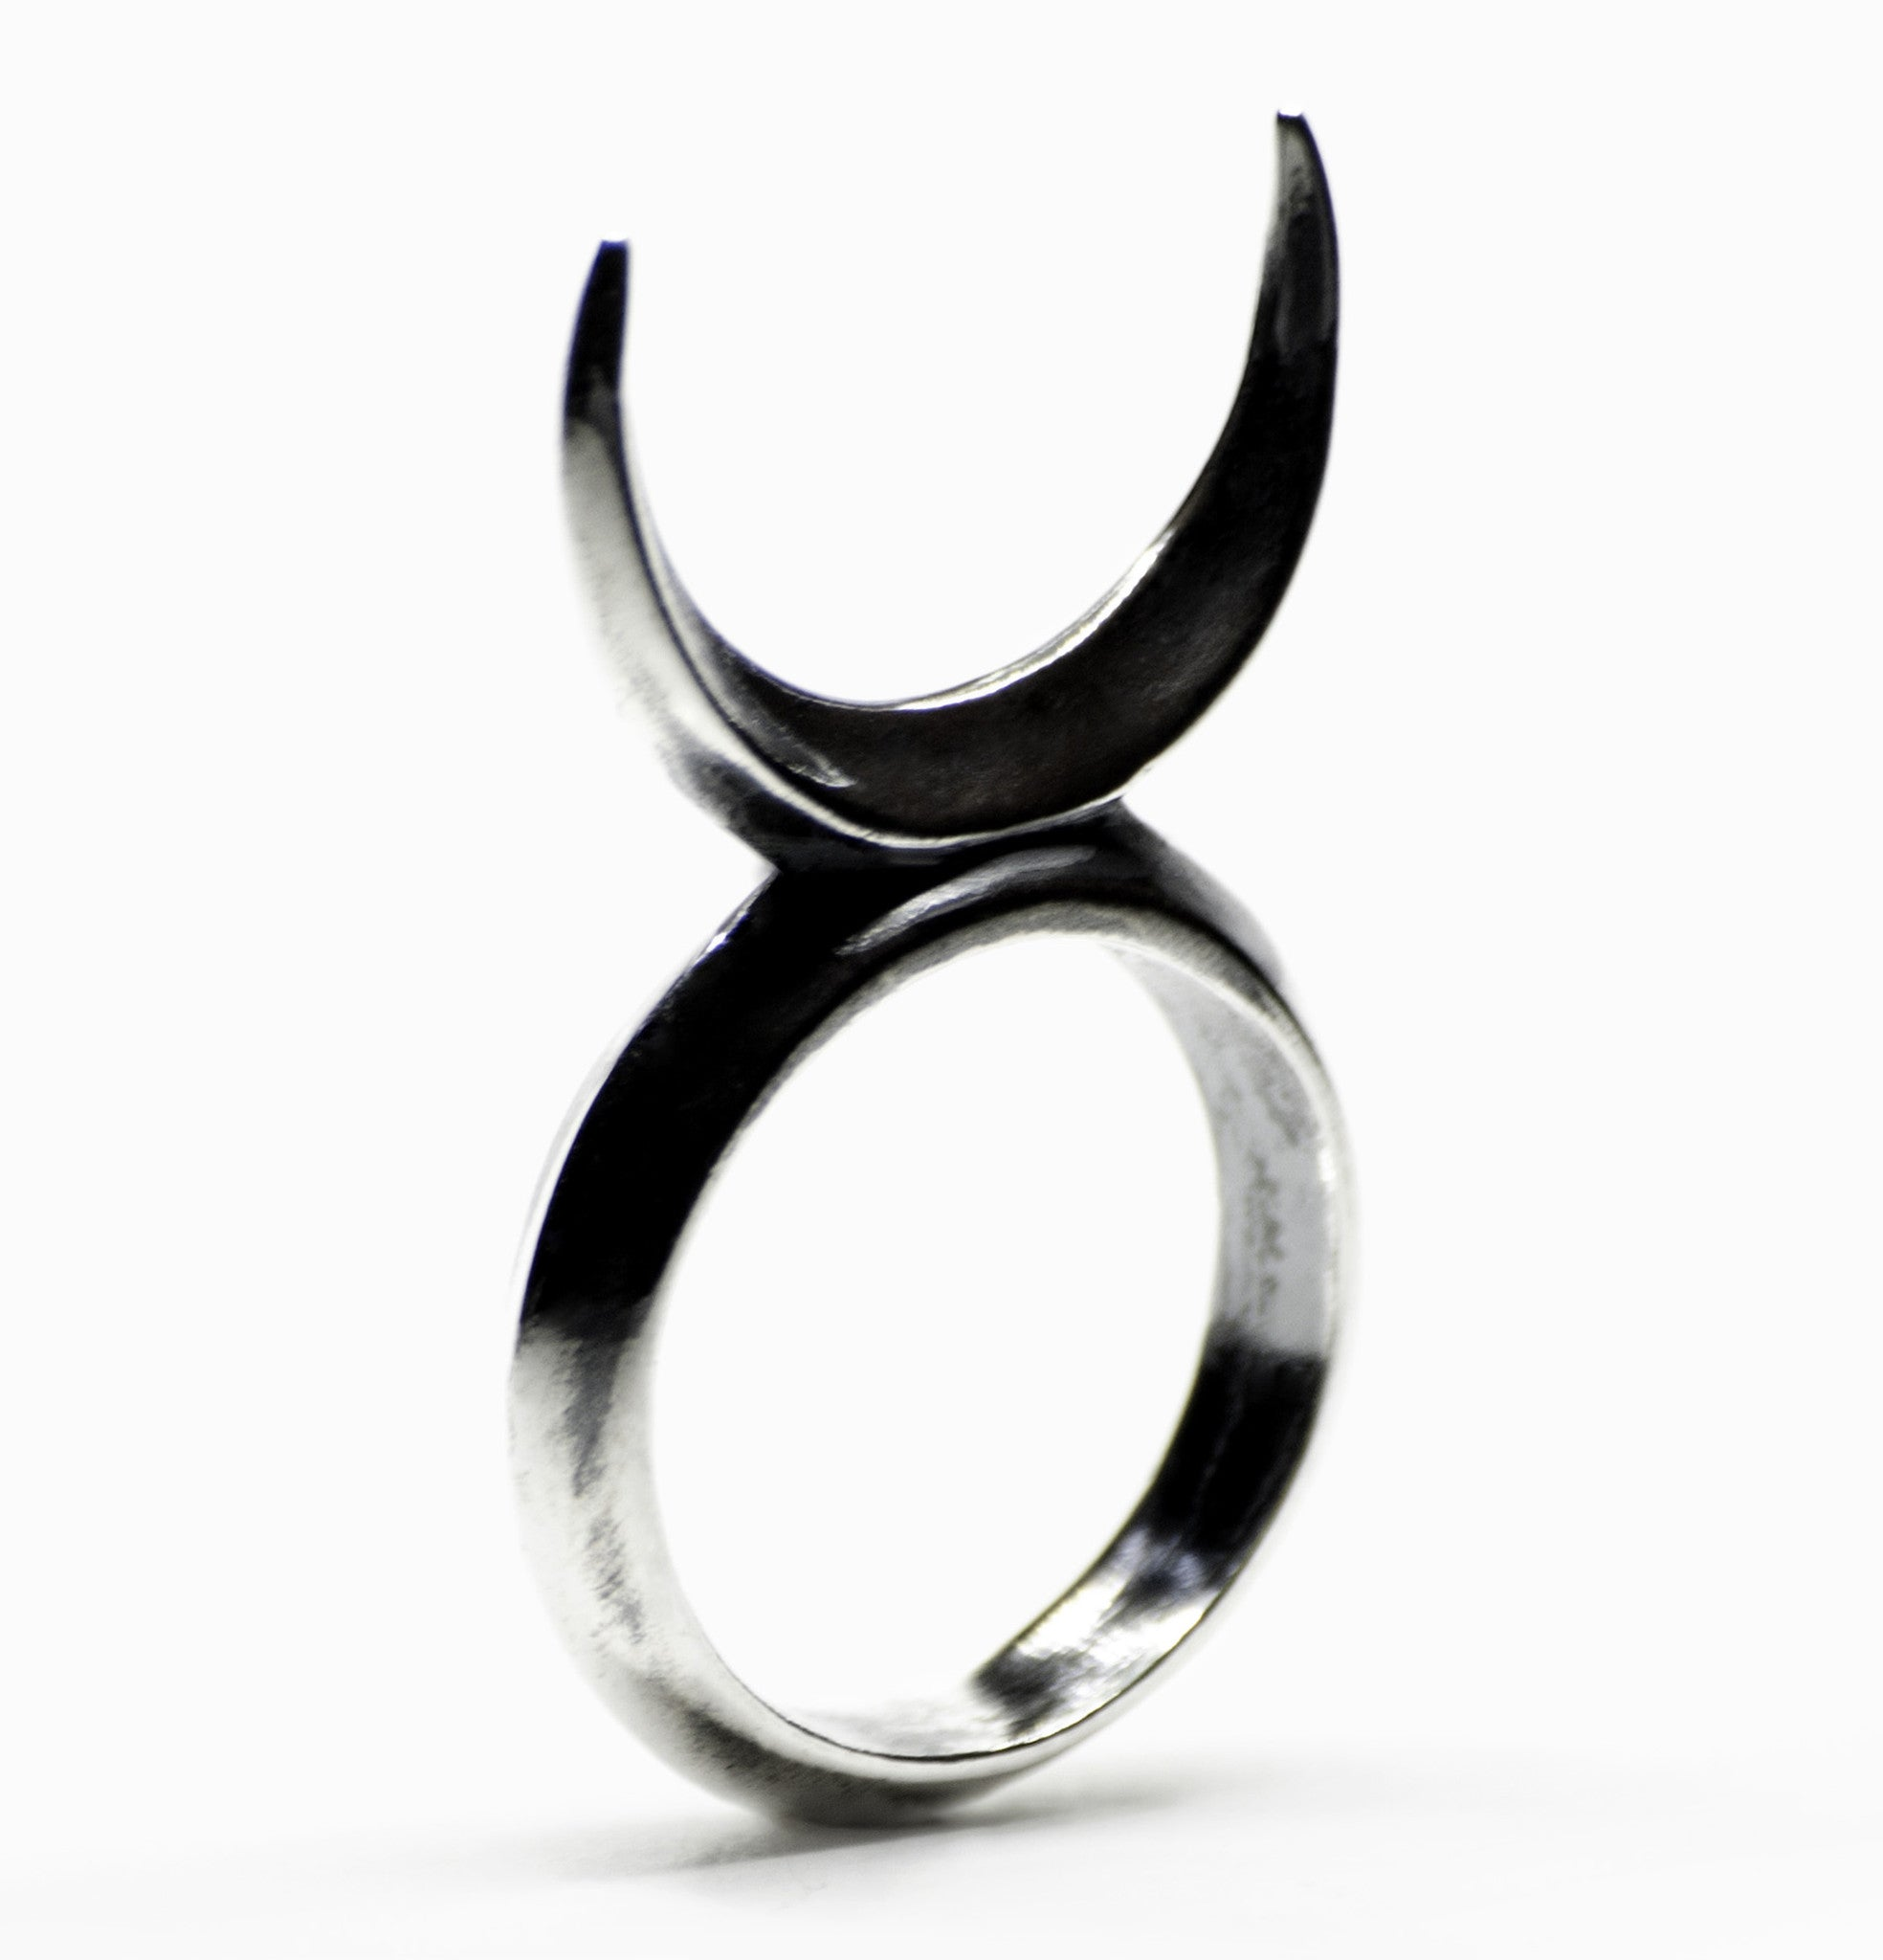 dark darkmoon collections kyoti onyx mooncycle moon ring rings